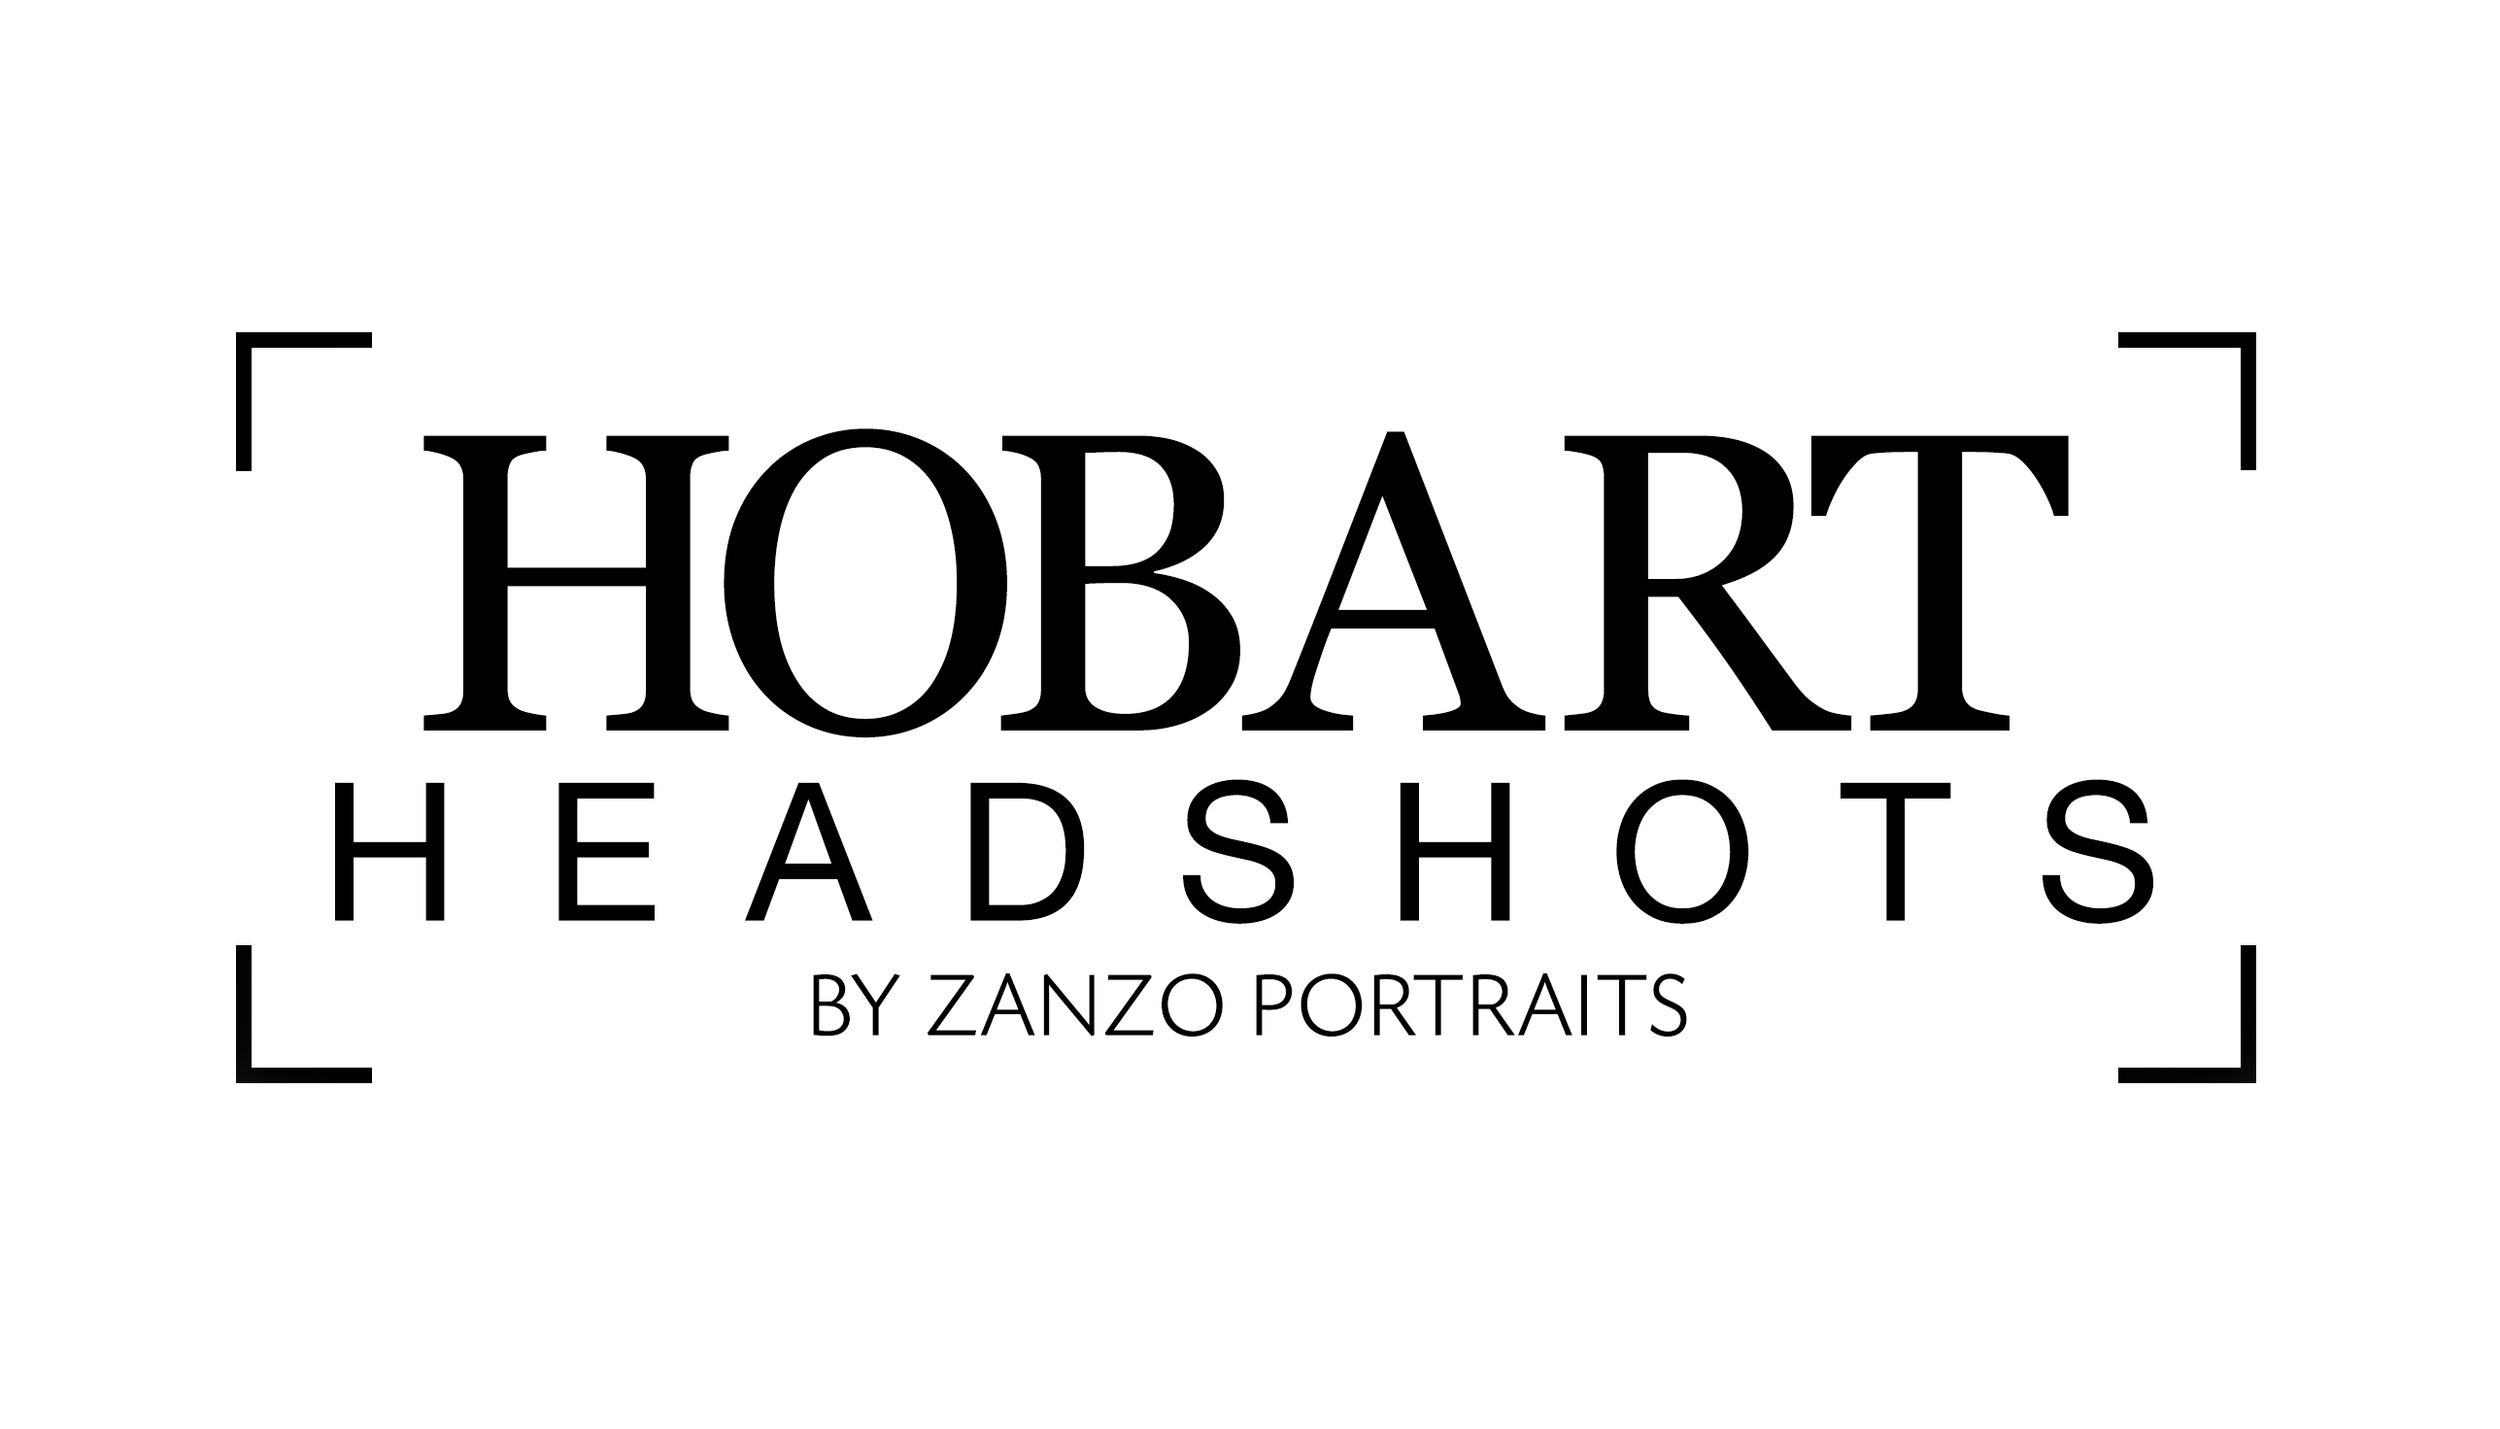 Need a new headshot? - Head on over to our dedicated commercial portrait website Hobart Headshots